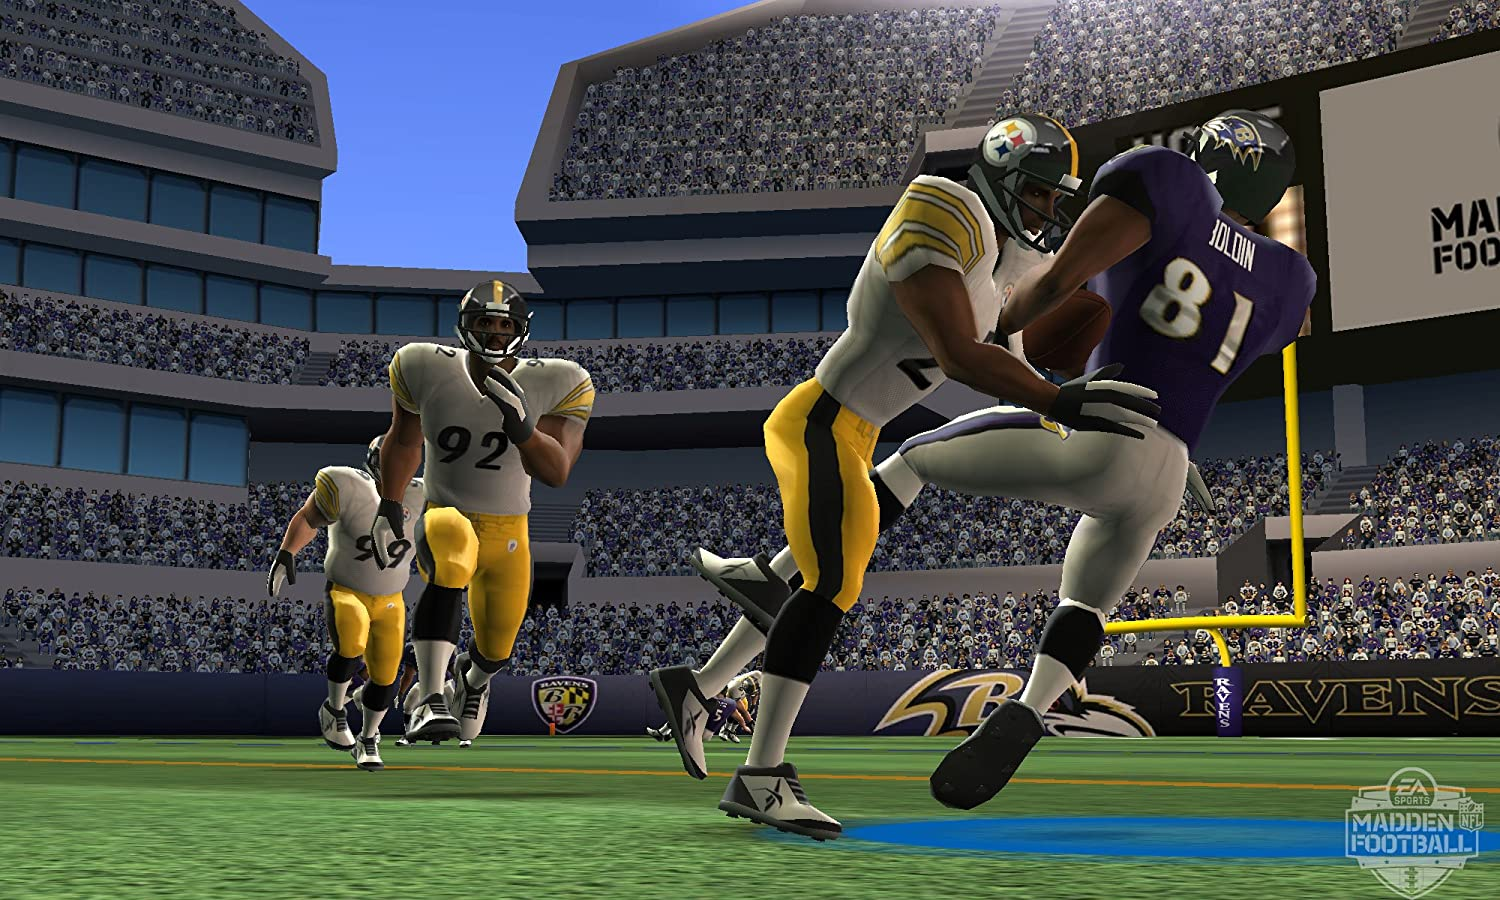 Amazon com: Madden NFL Football 3DS: Video Games